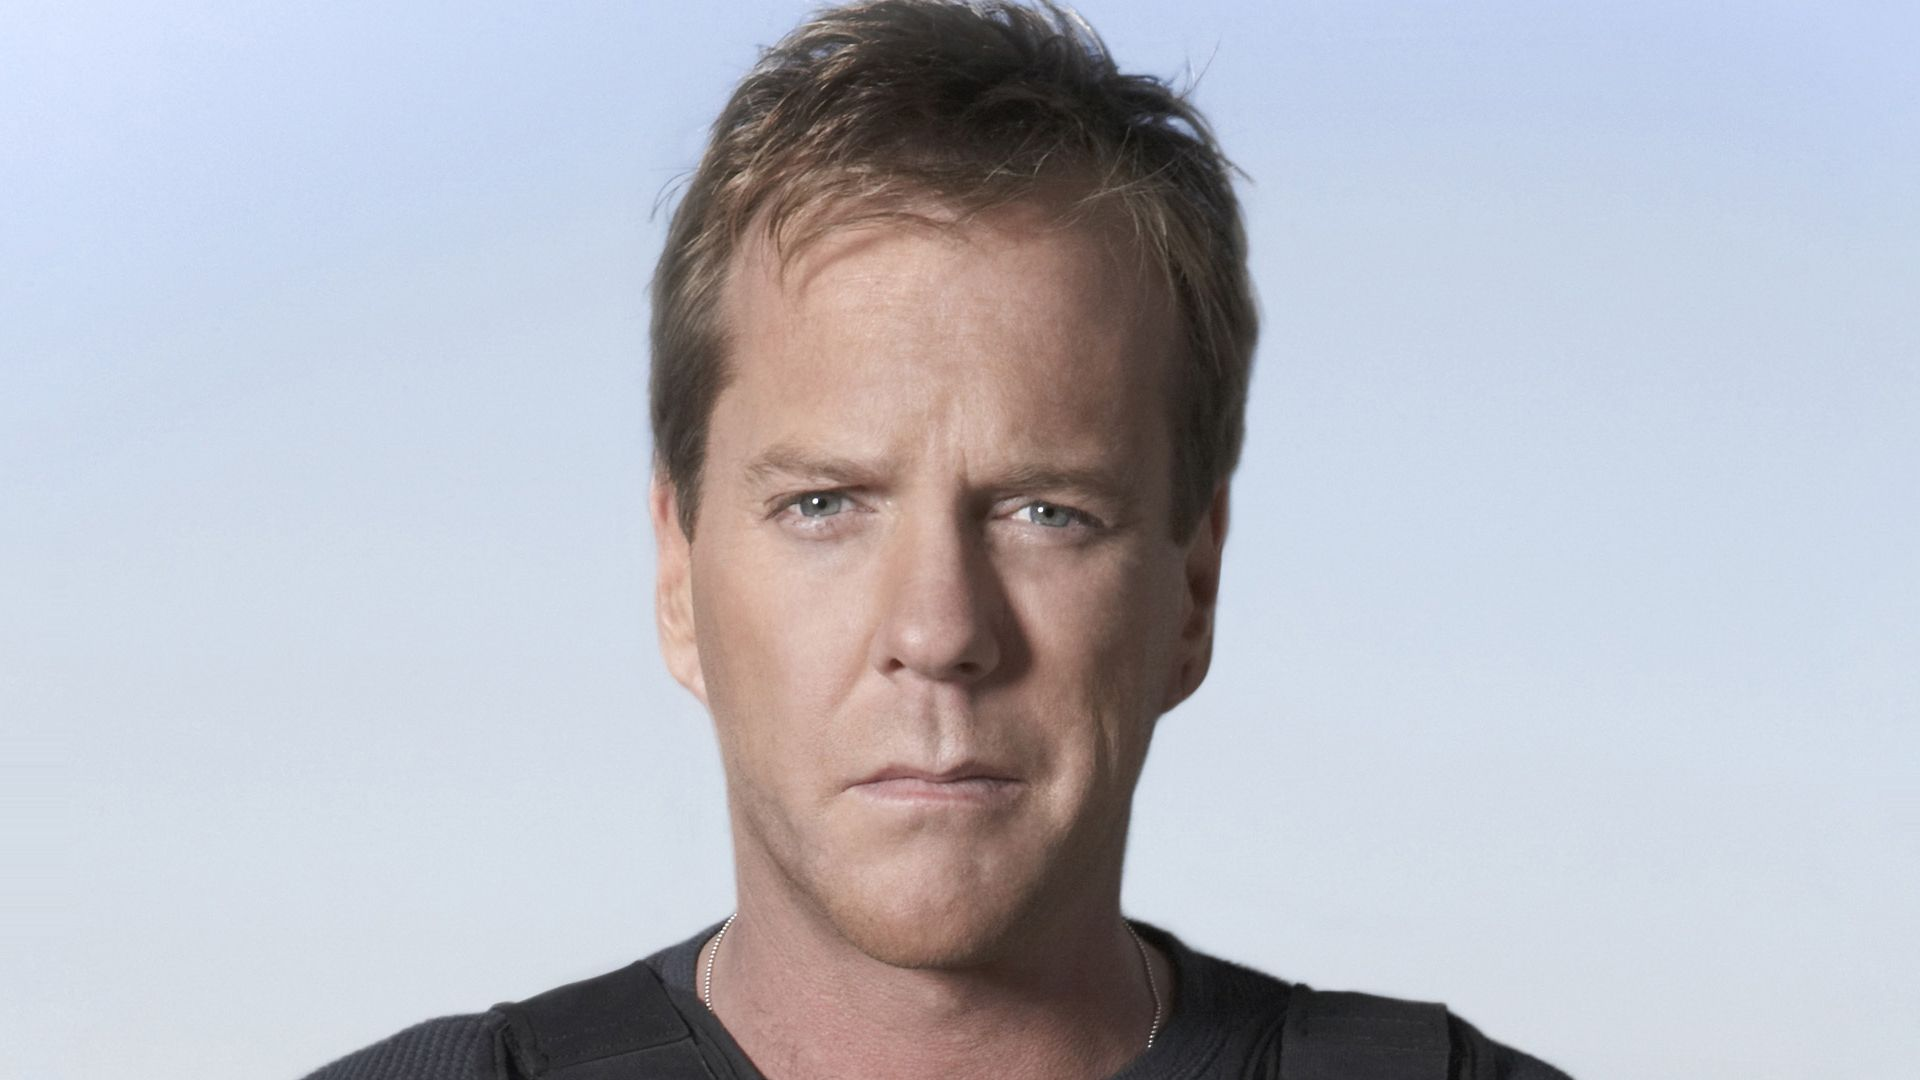 Kiefer Sutherland widescreen wallpapers